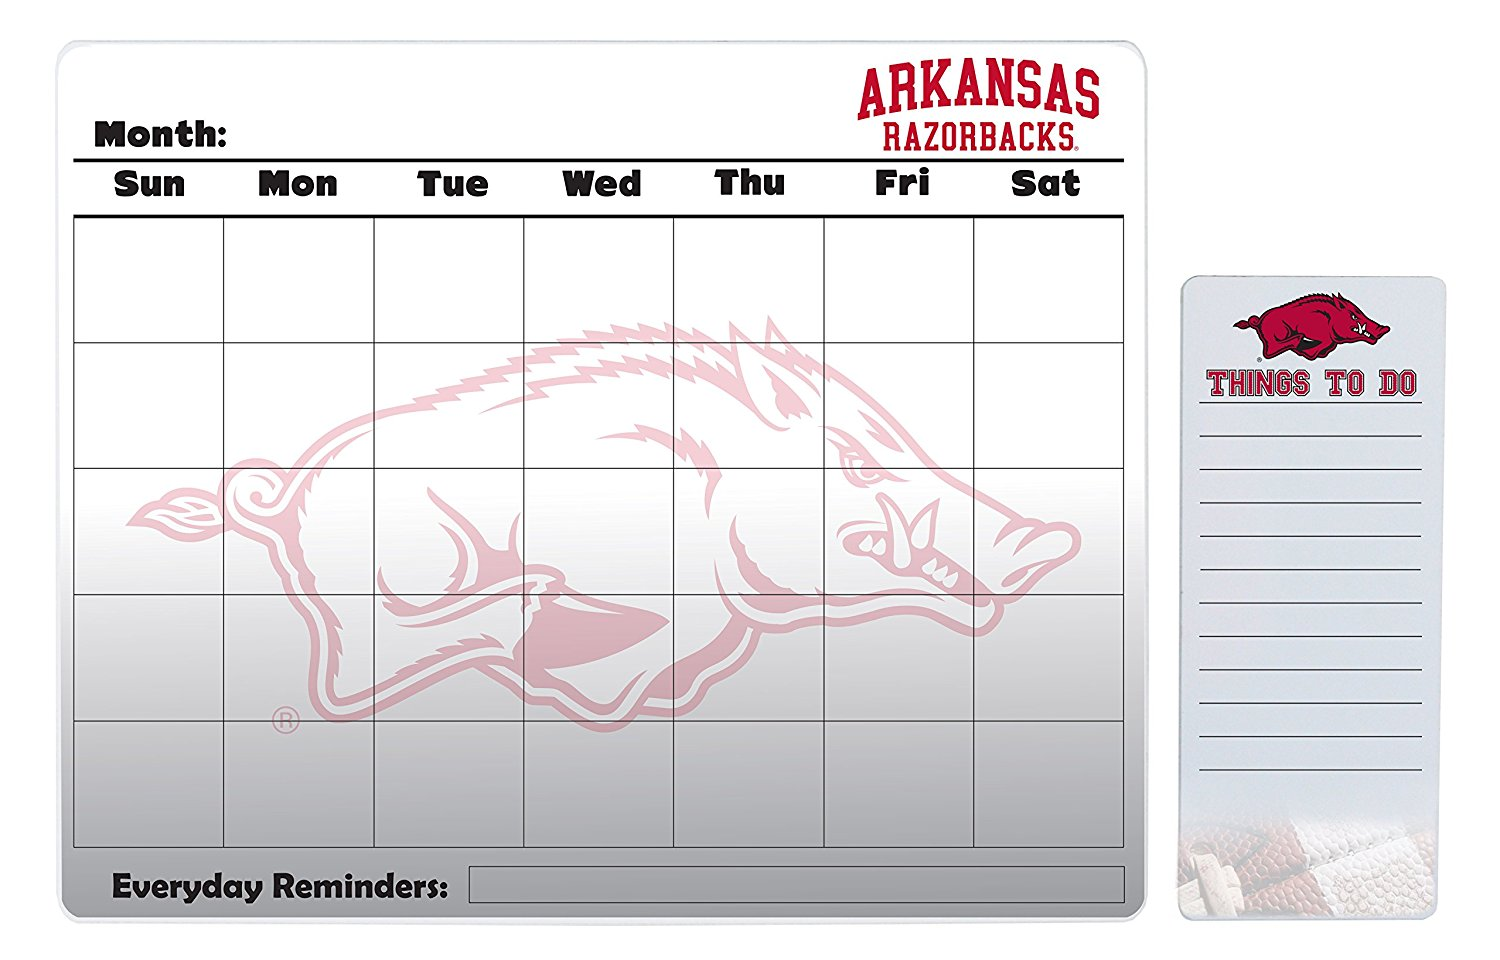 "Arkansas Razorbacks 16"" x 20"" Dry Erase Calendar Peel and Stick and 4"" x 10"" Dry Erase Board Peel and Stick"